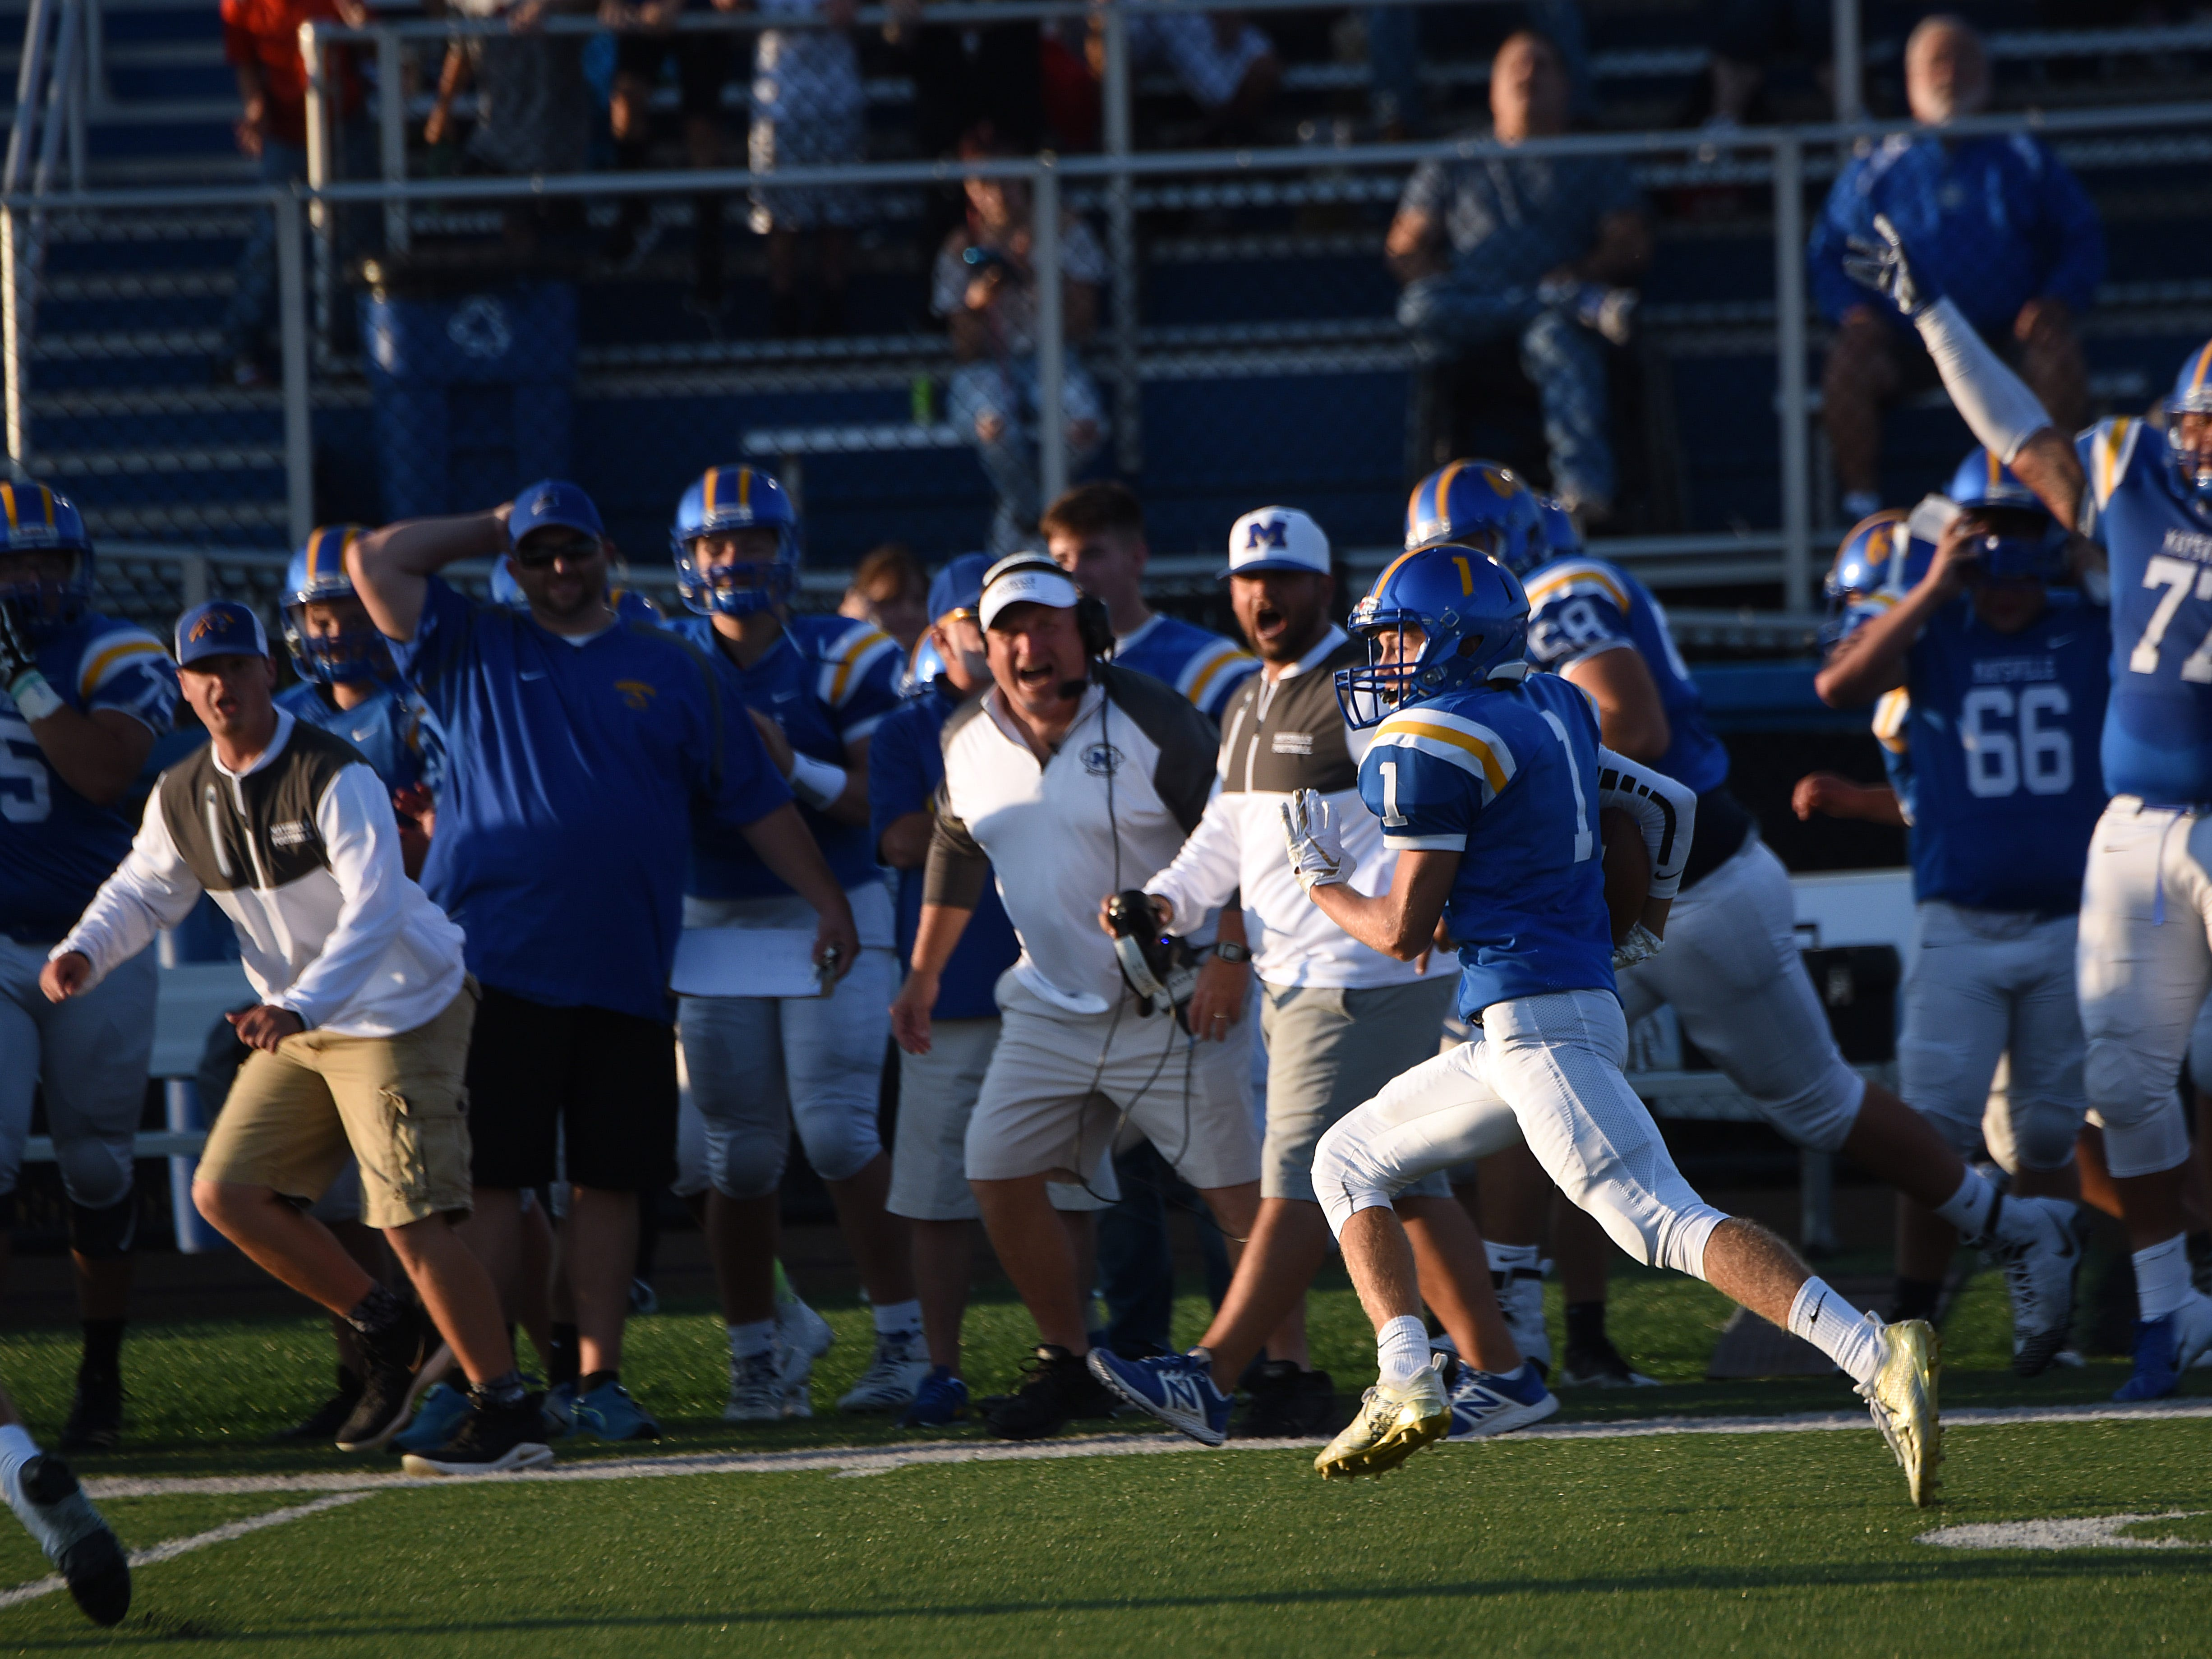 Maysville junior wide receiver Mason Swauger carries the ball as the sideline cheers him on during Thursday's season opening game against Newark Catholic. The Panthers fell 17-13 to the Green Wave.